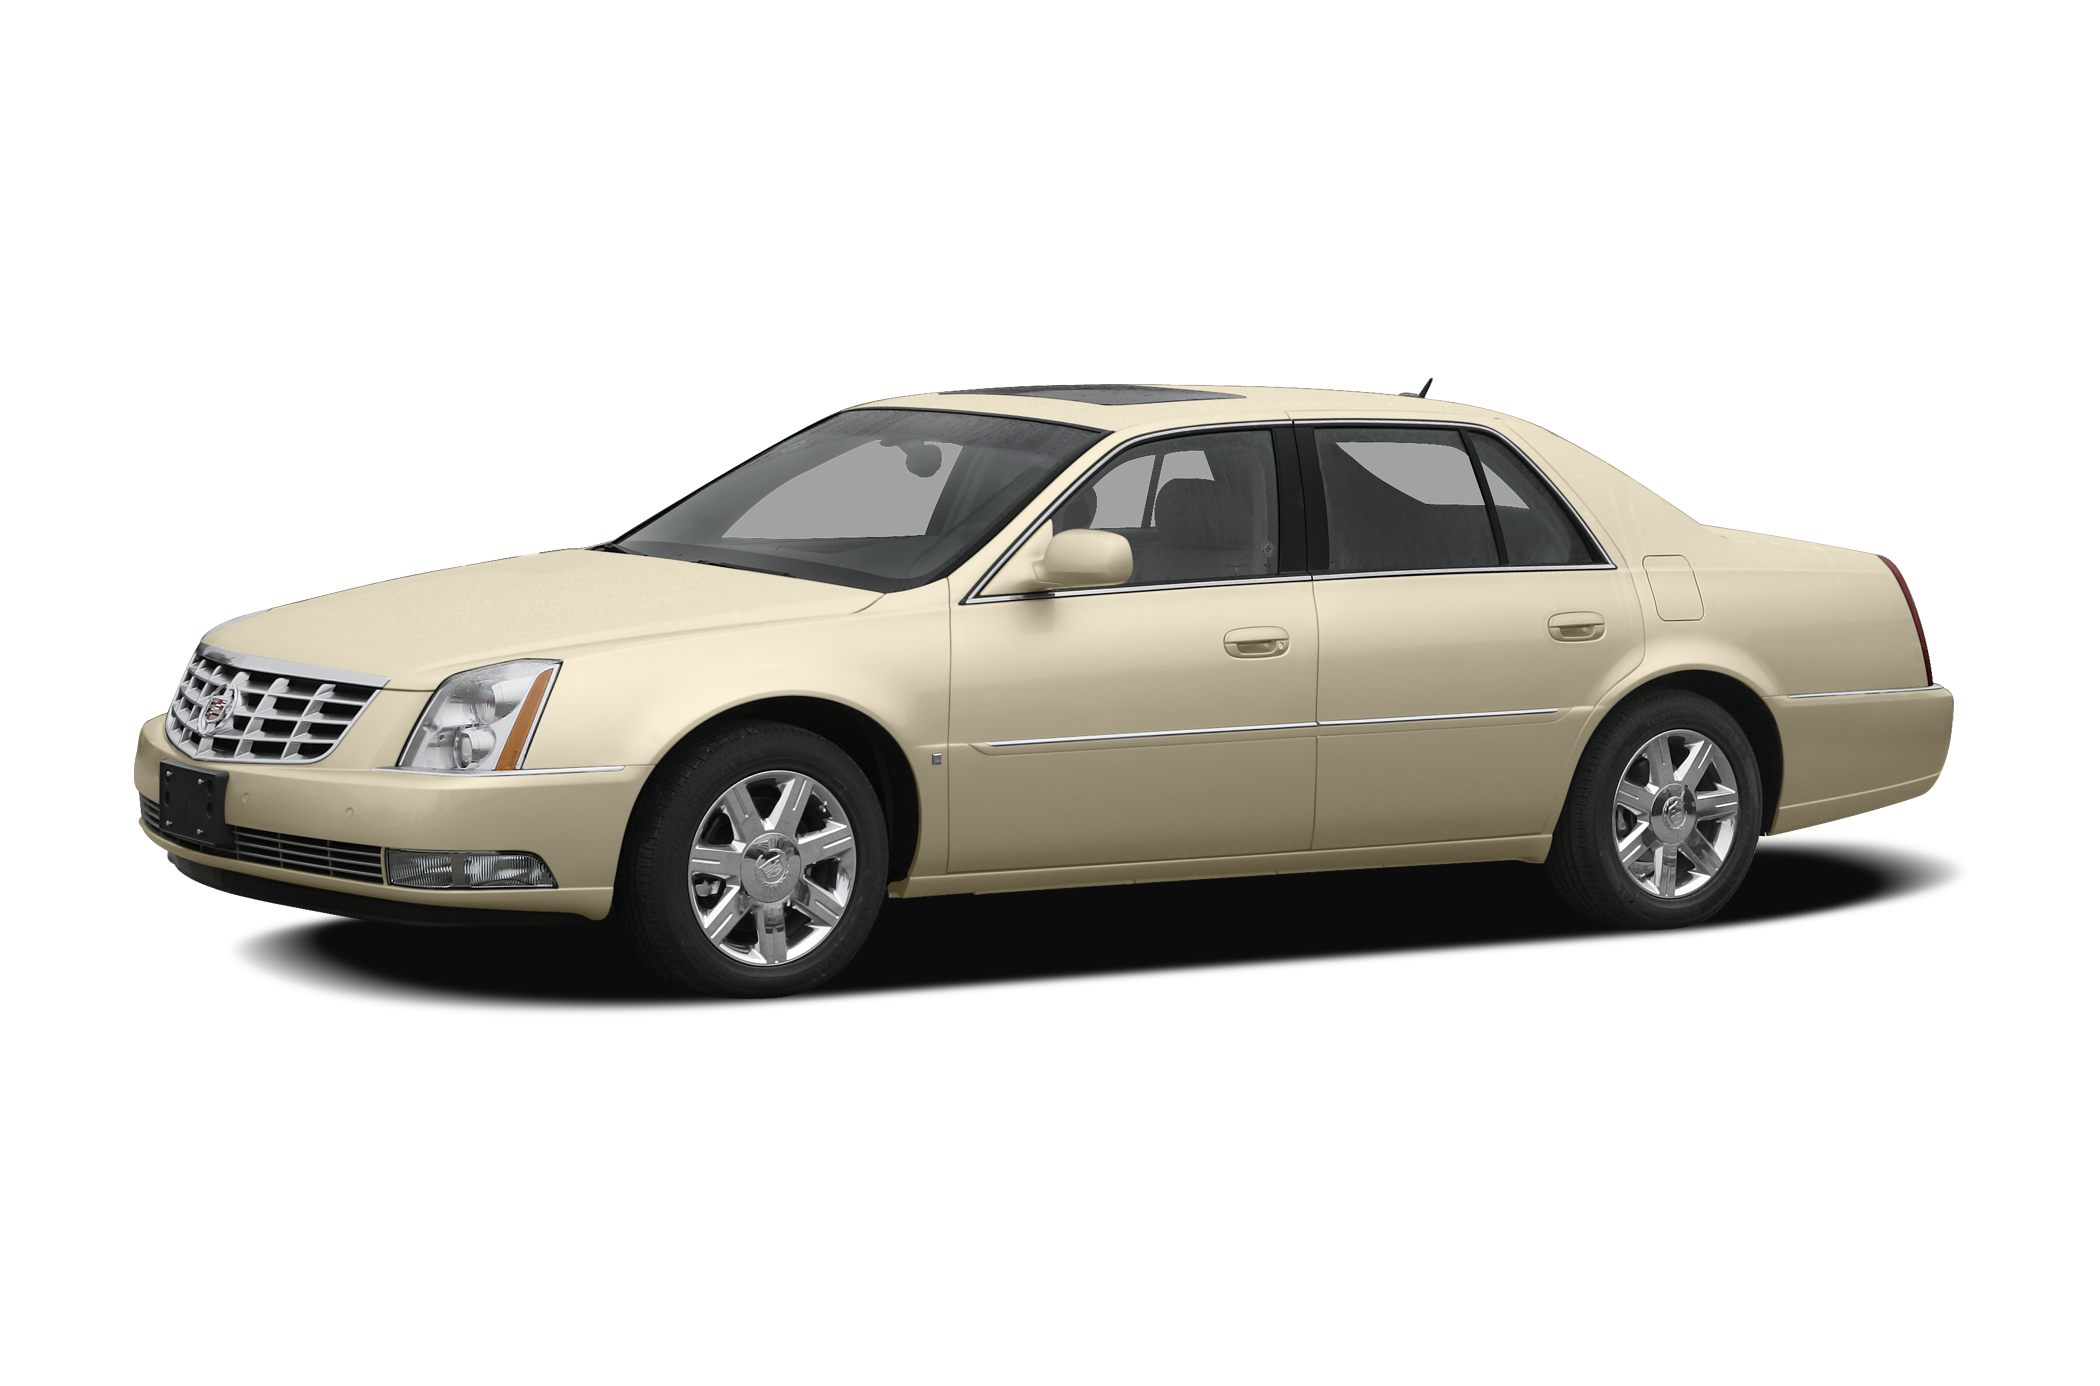 2009 Cadillac DTS 1SA Sedan for sale in Watchung for $11,955 with 100,488 miles.